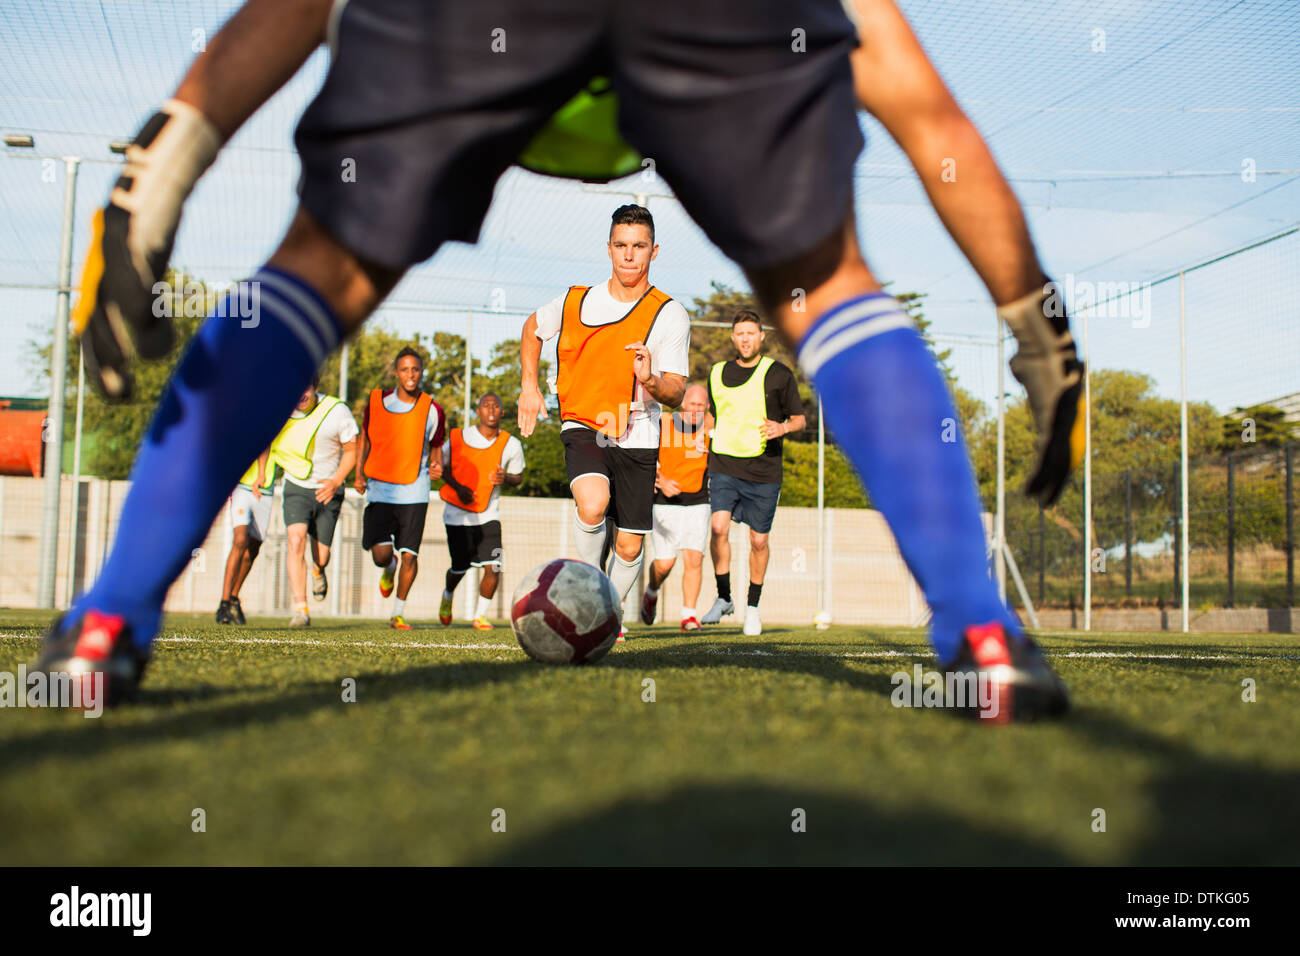 Soccer players training on field - Stock Image